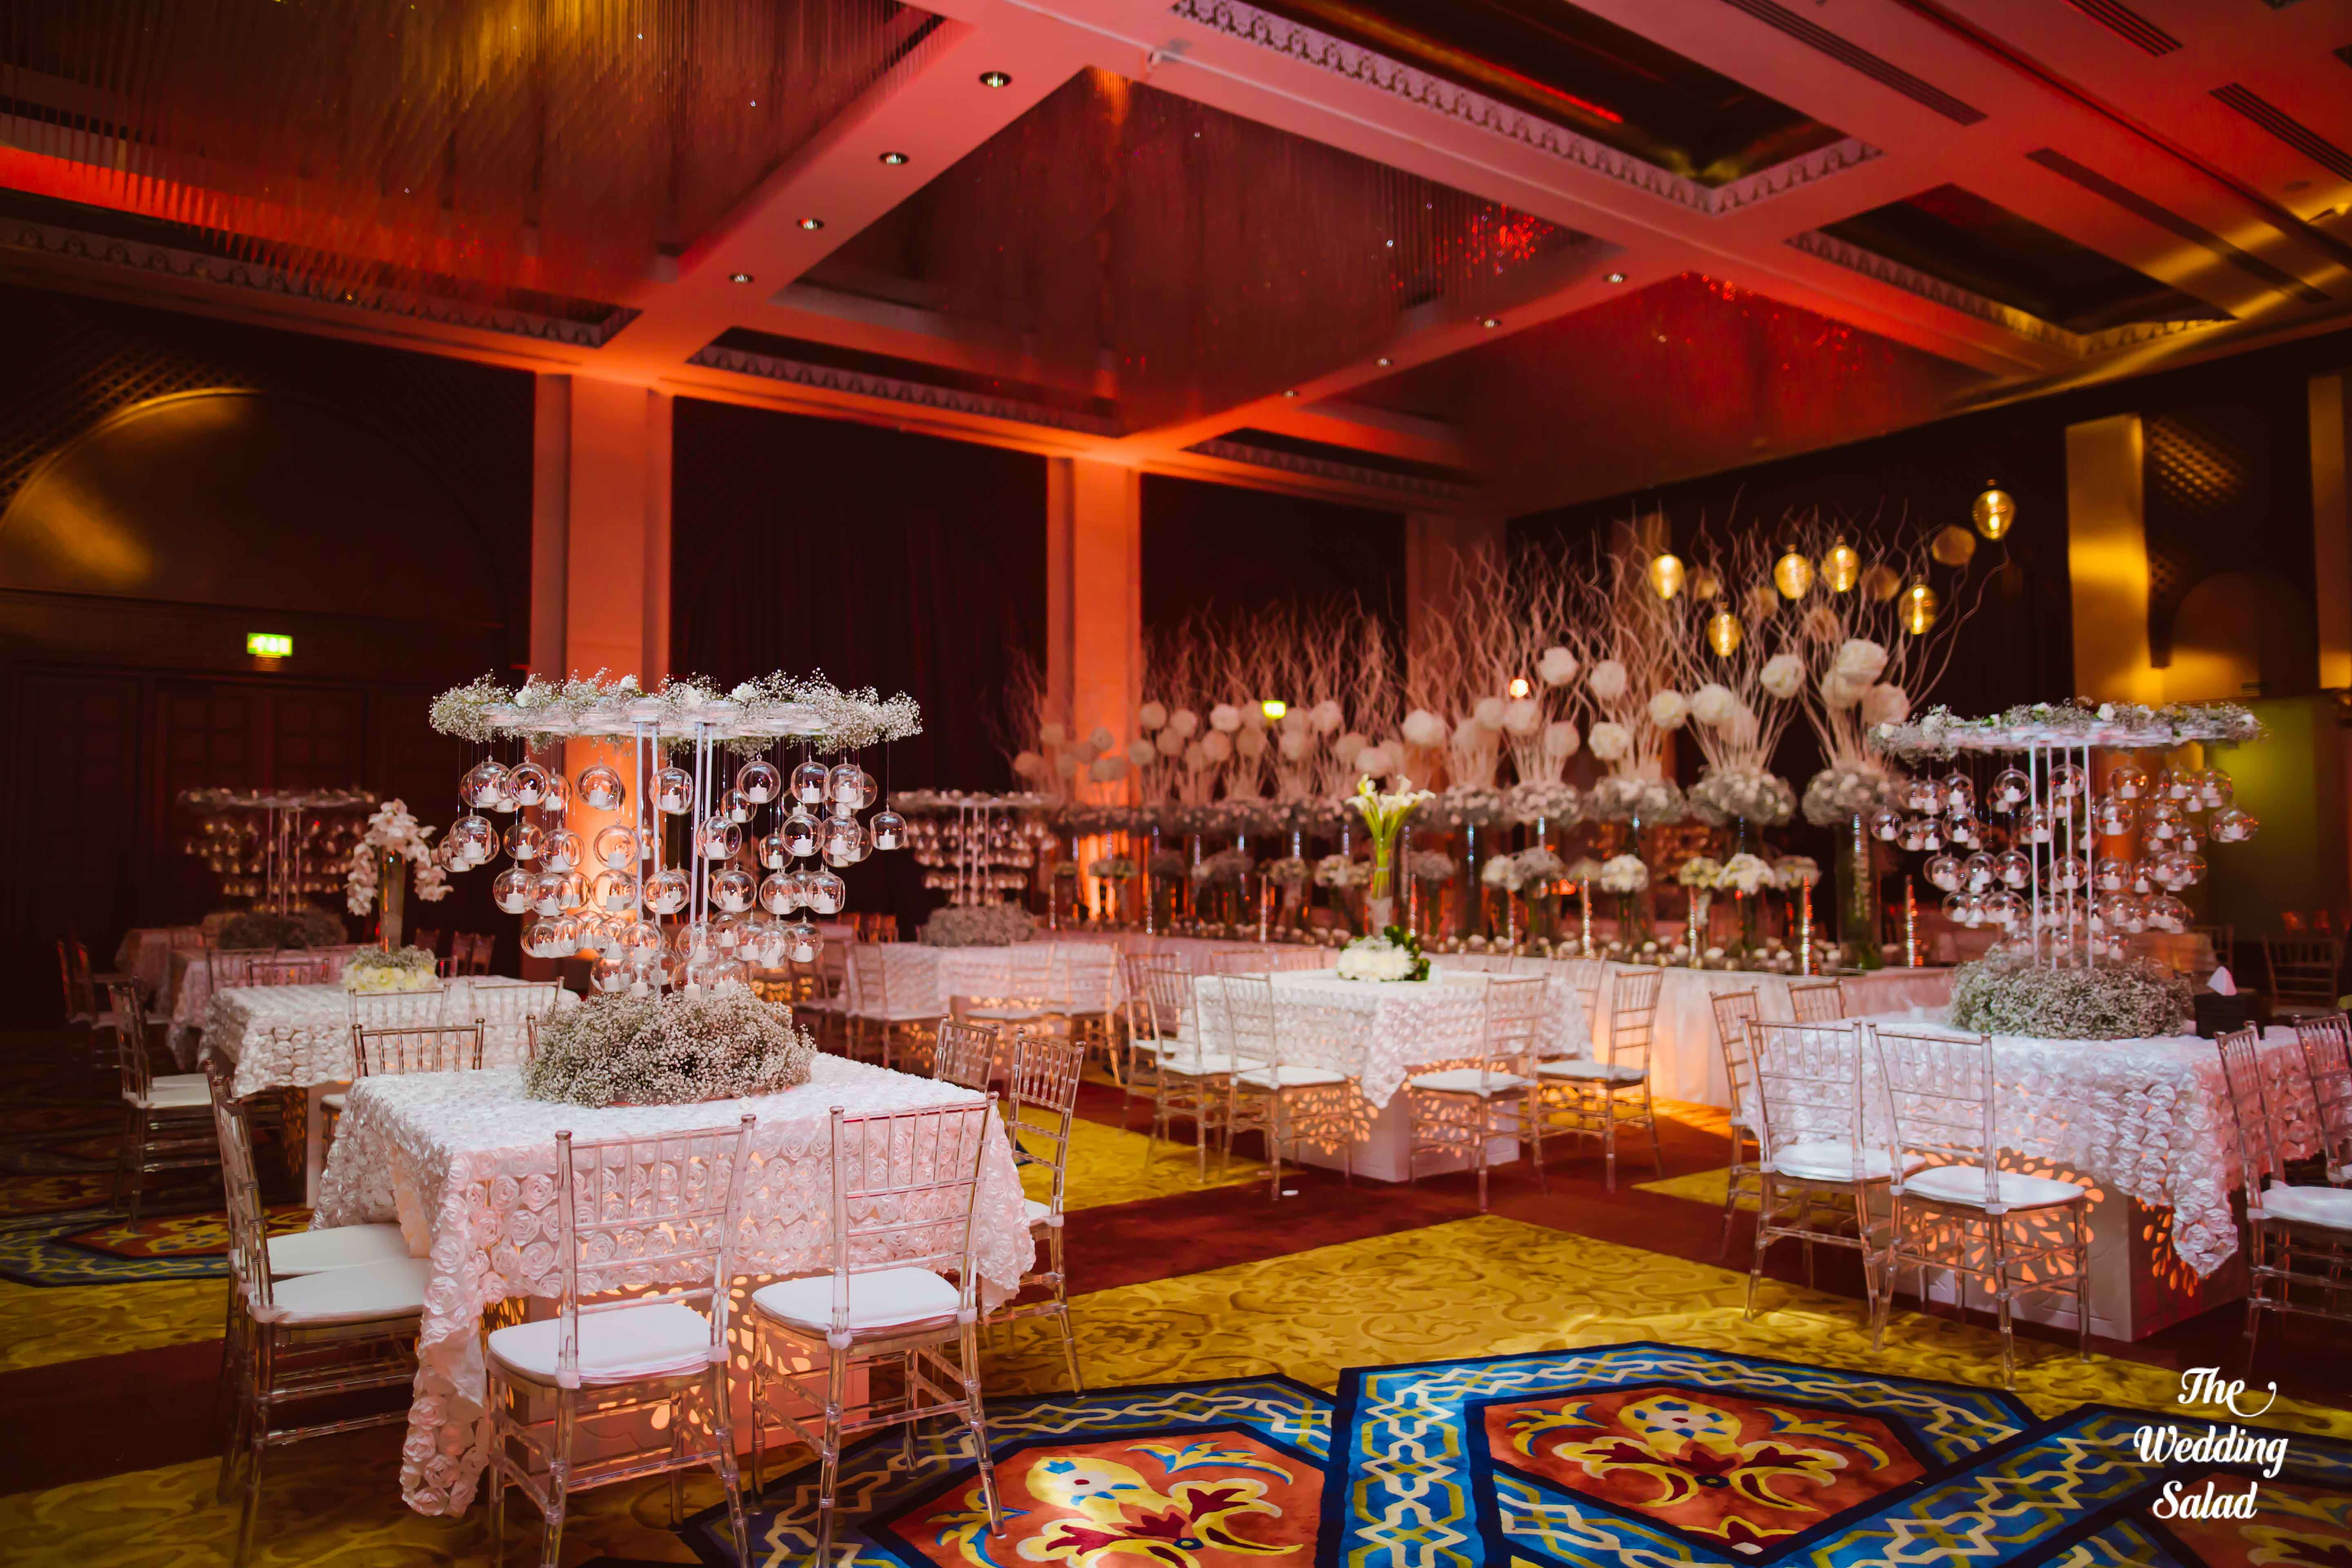 the perfect decoration!:the wedding salad, manish malhotra, arpita mehta, sabyasachi couture pvt ltd